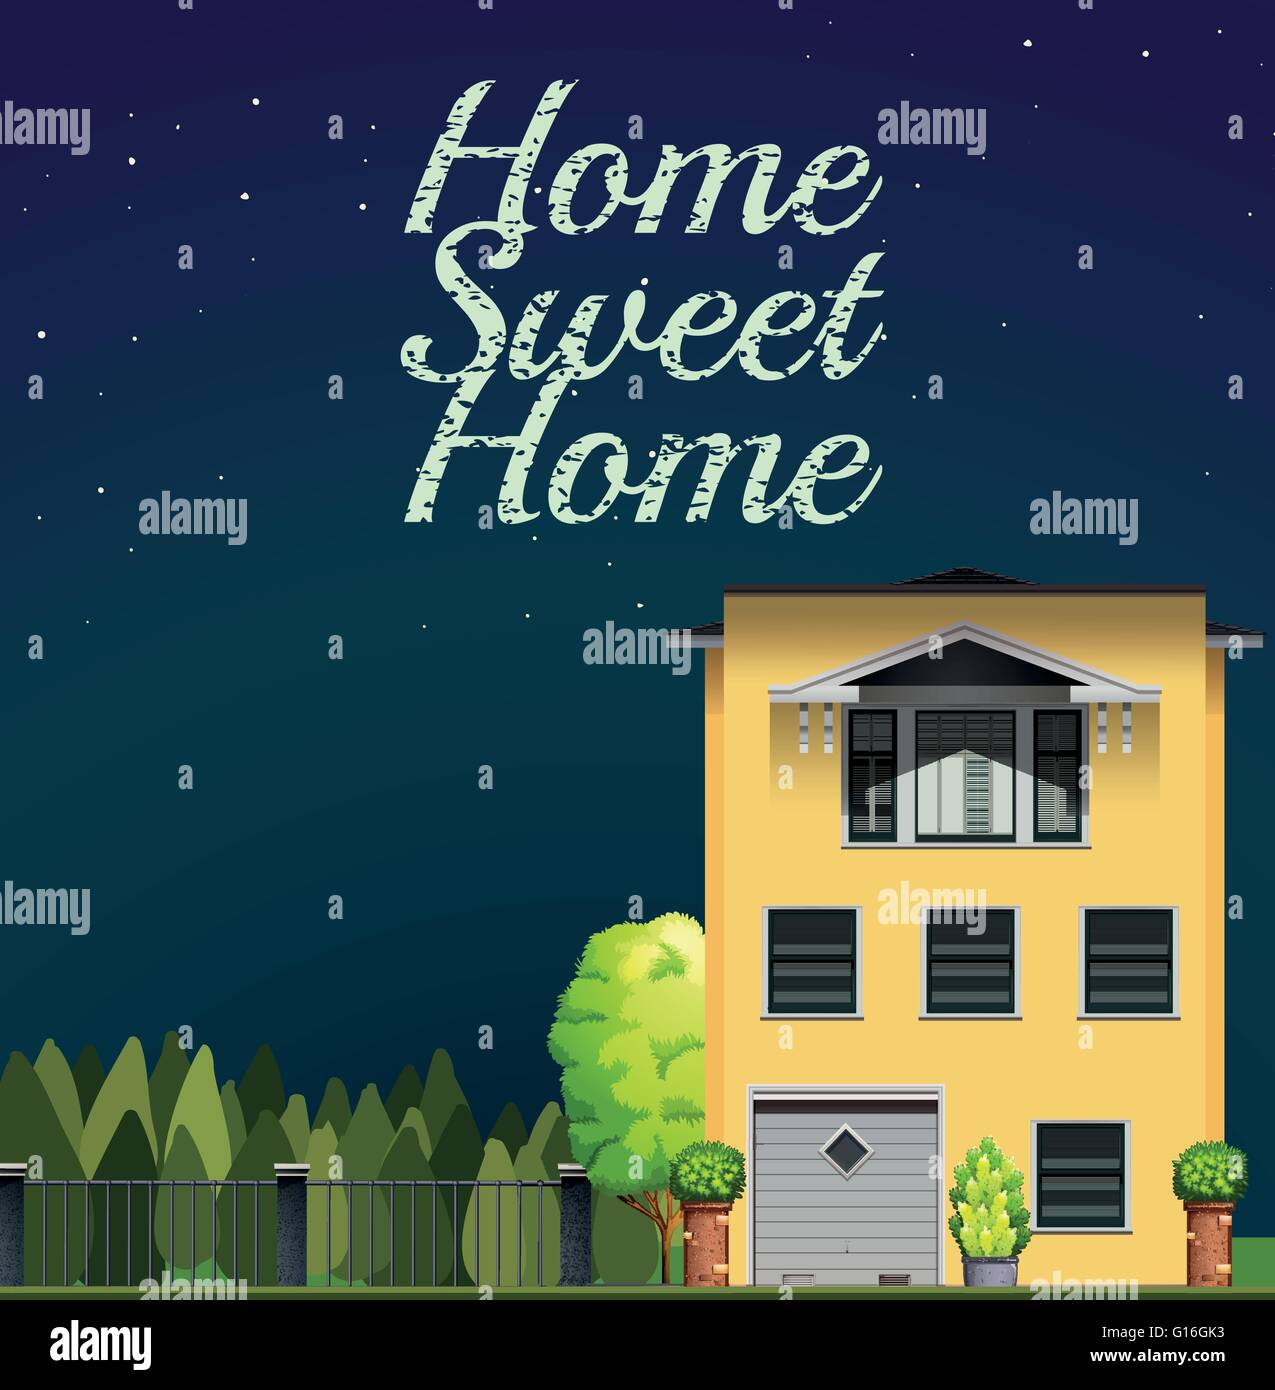 Home sweet home at night illustration - Stock Vector